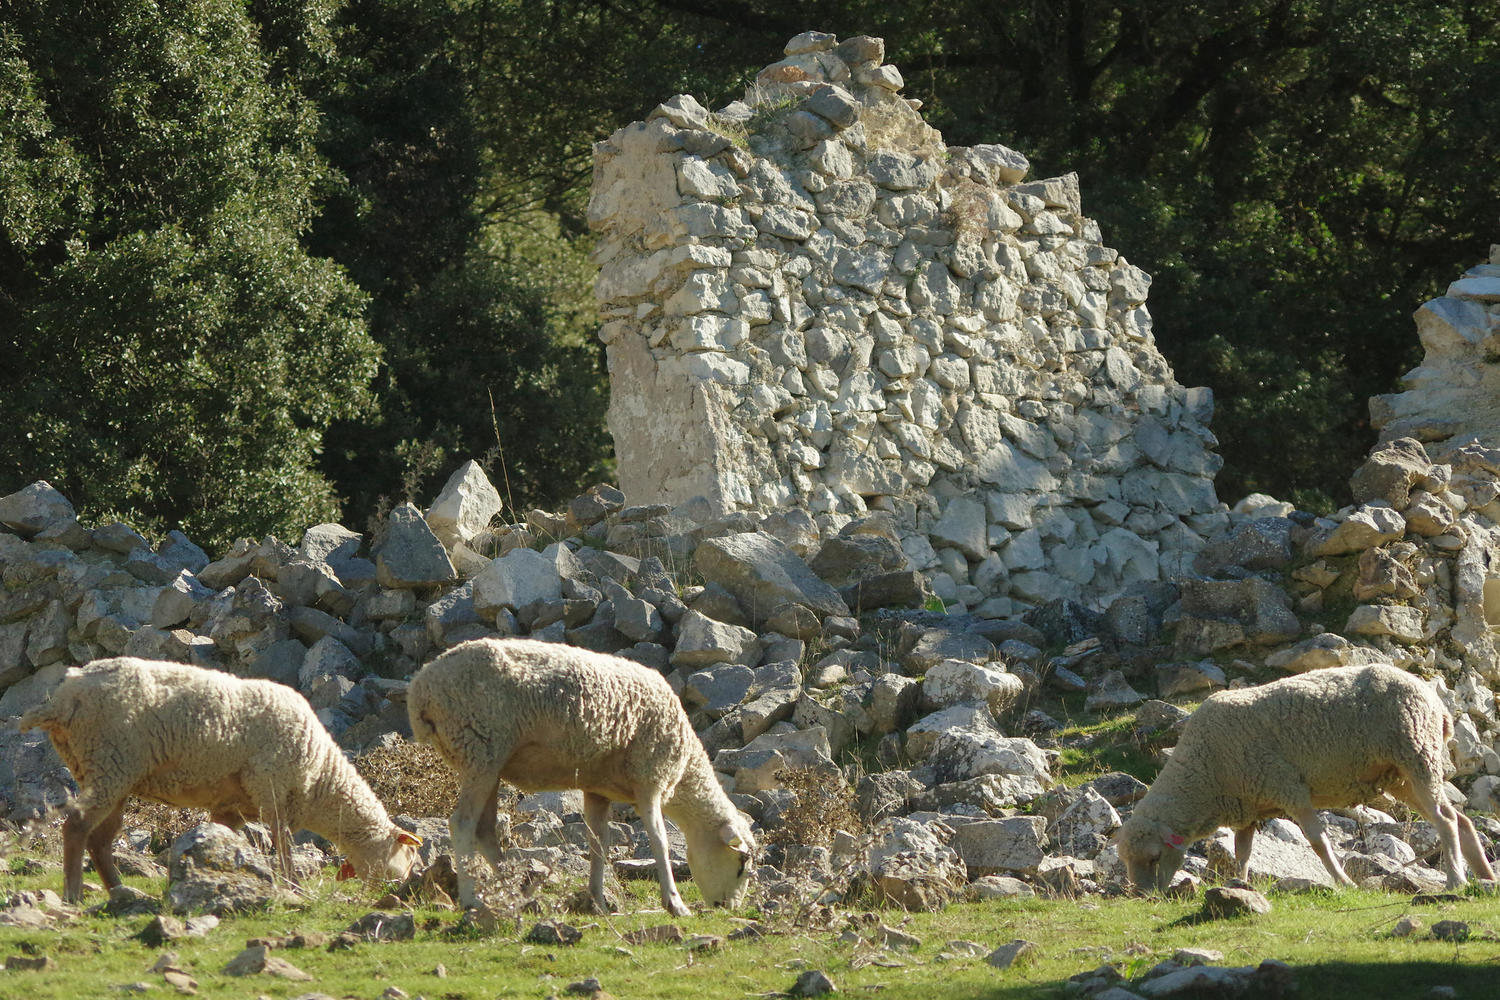 Sheep grazing in front of a ruined cortijo near Zuheros